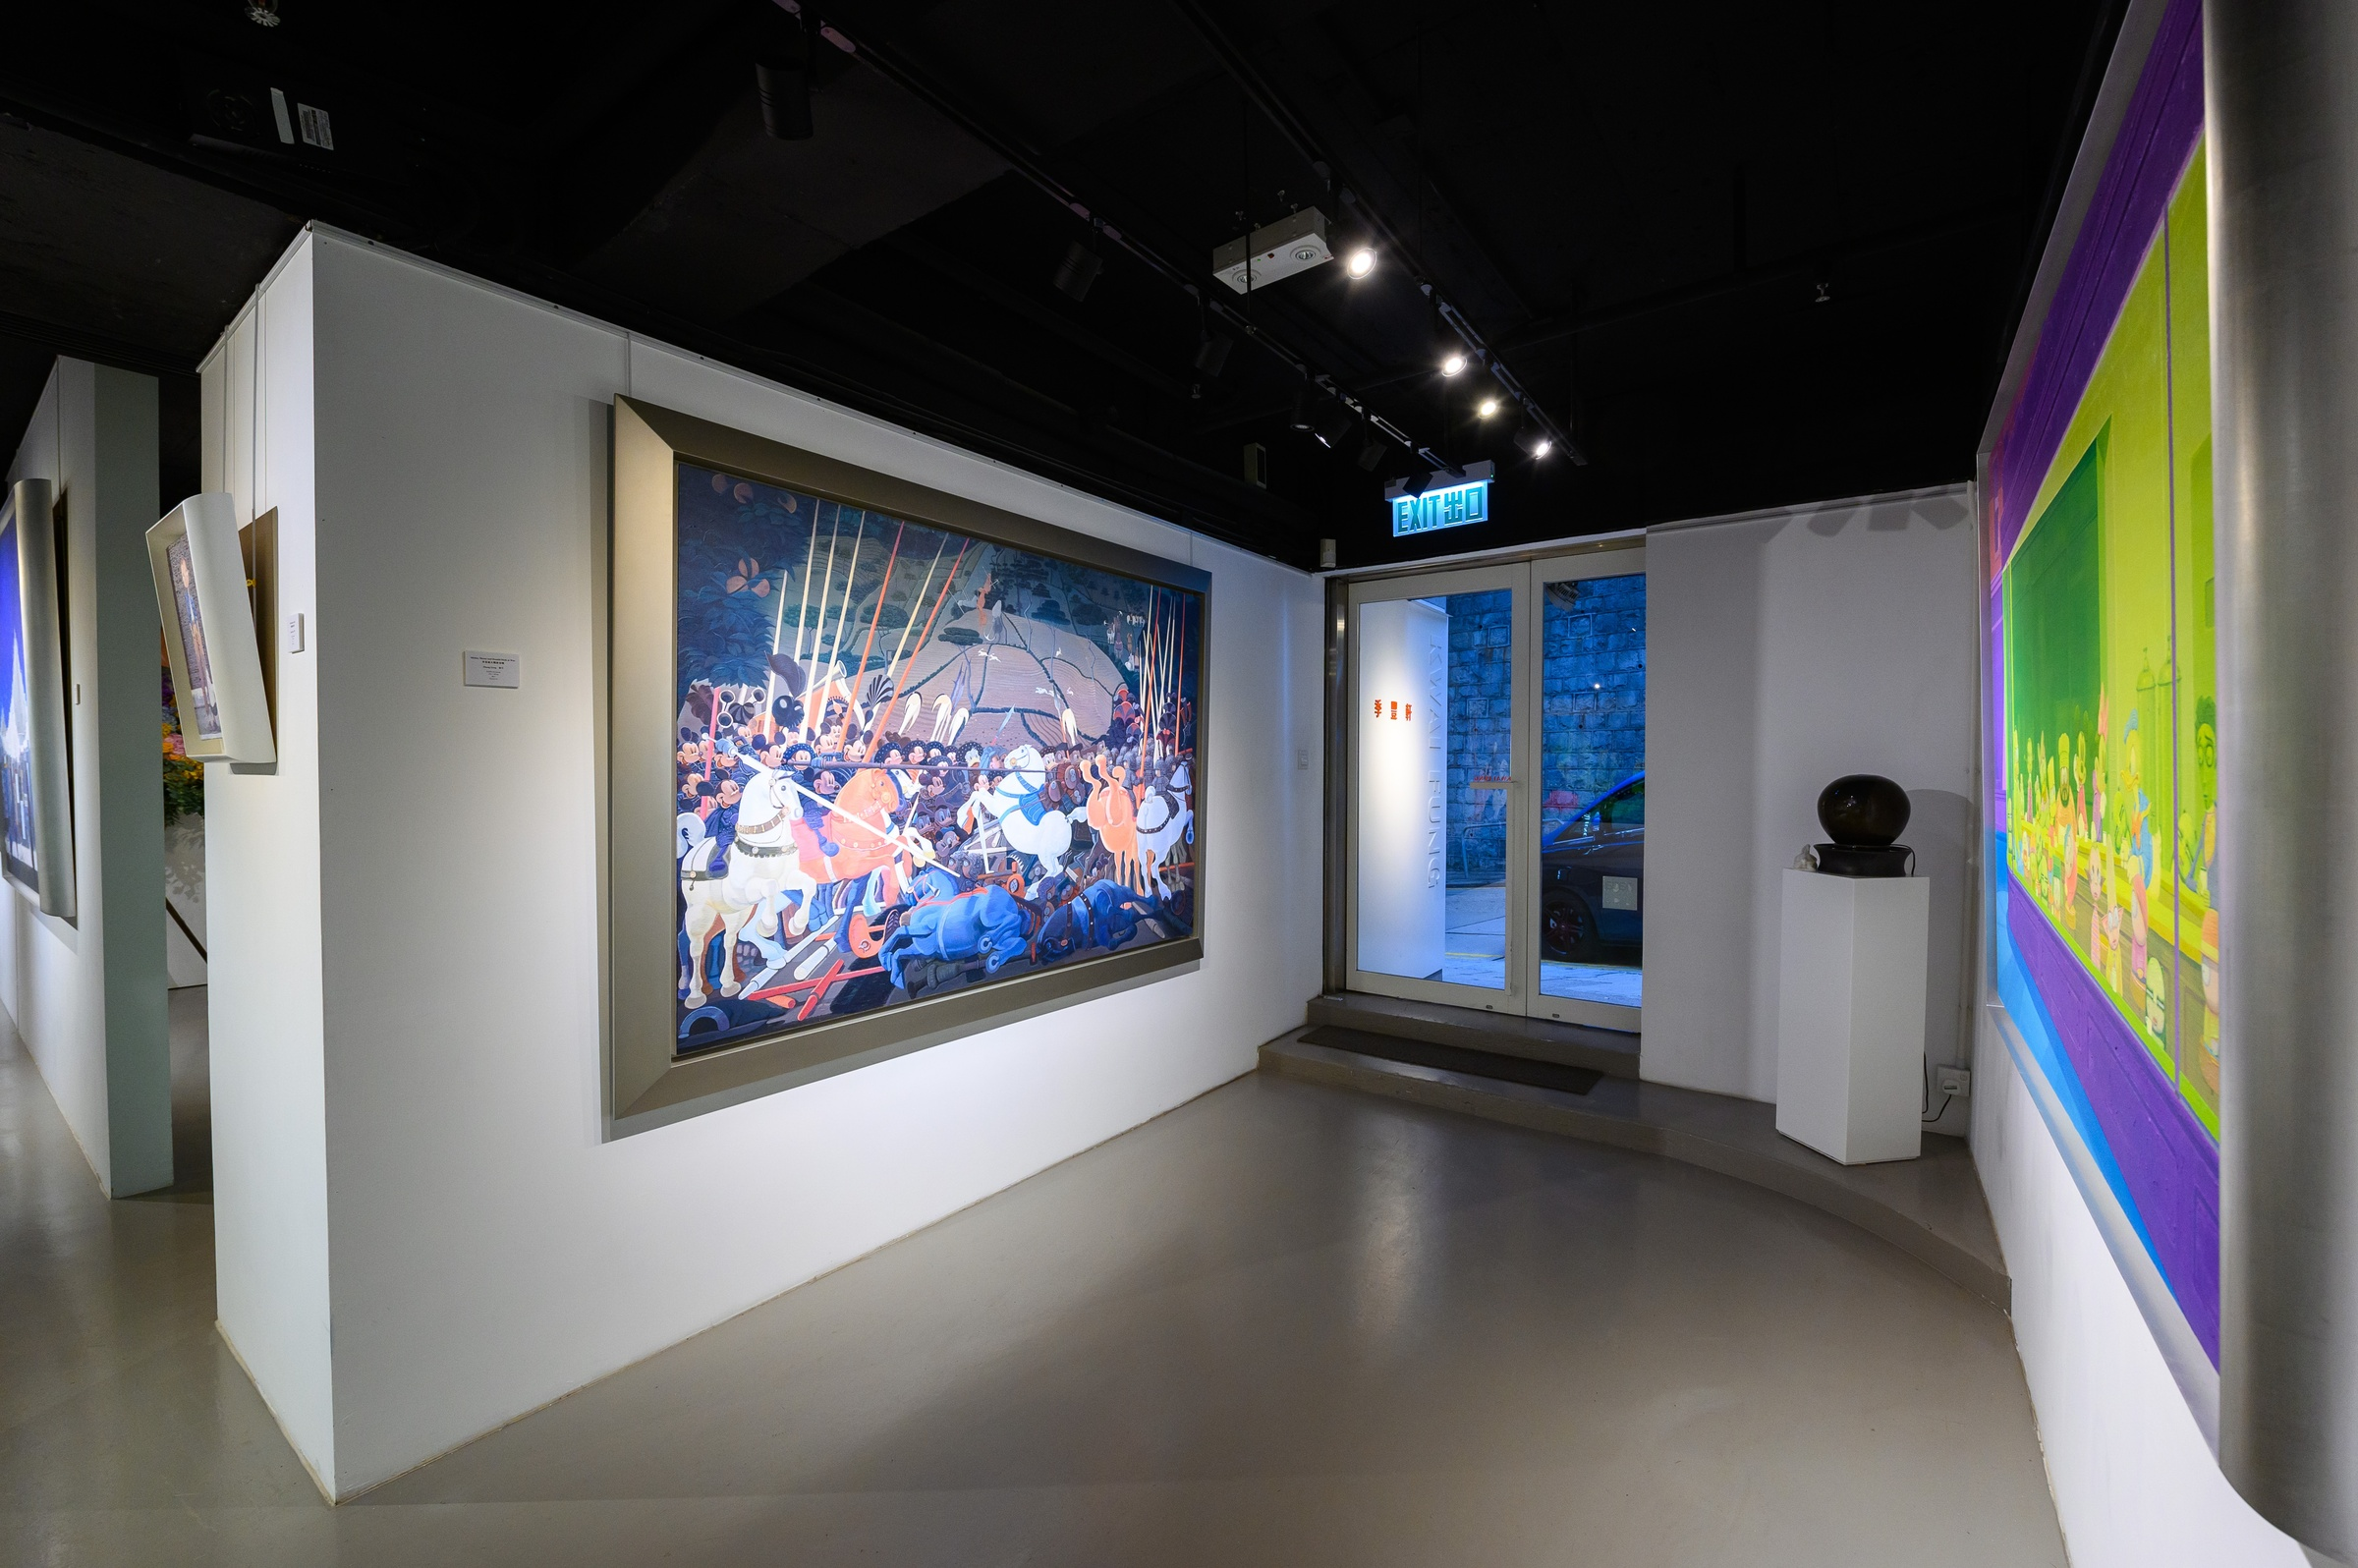 Beyond Description, Beyond Boundary • Paintings of Zhang